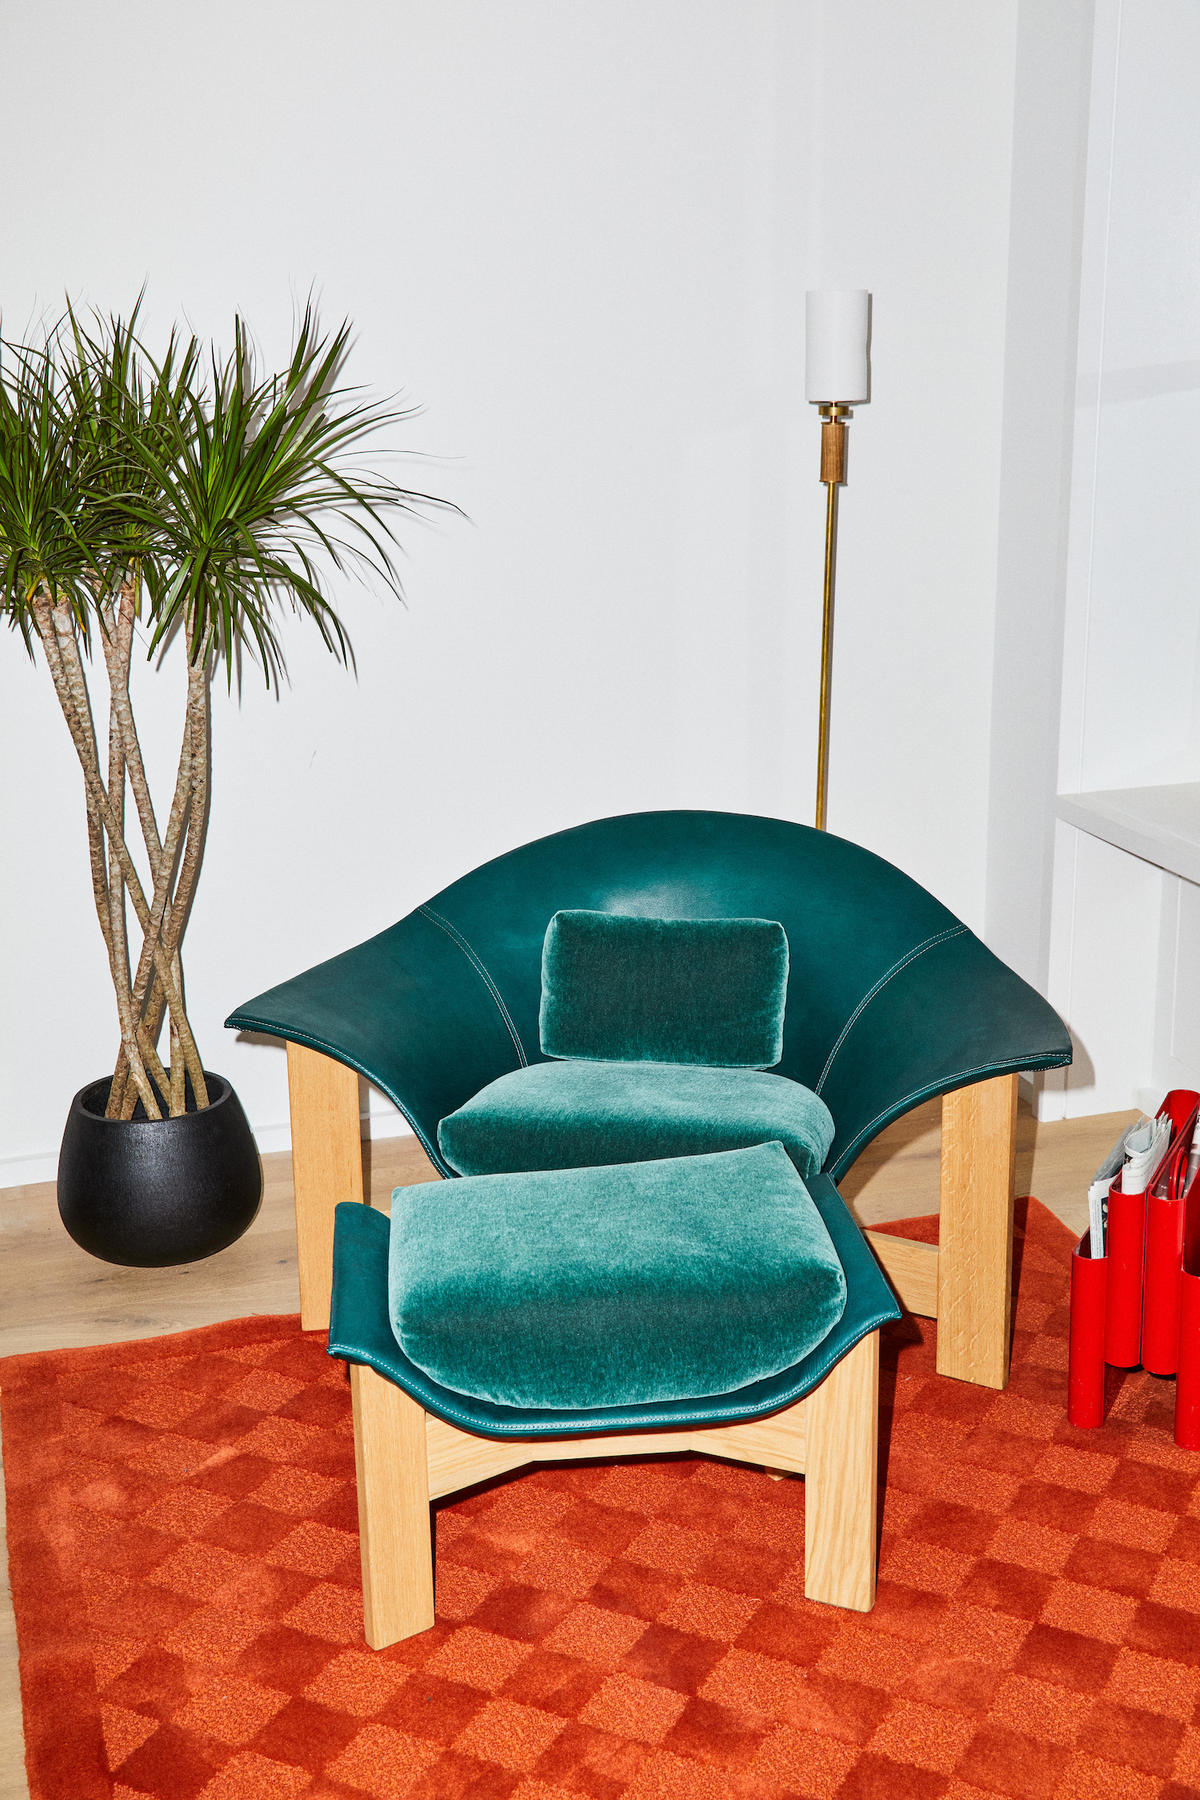 Fresh launches from Lulu LaFortune, Ruggable's collaboration with Jonathan Adler, and more